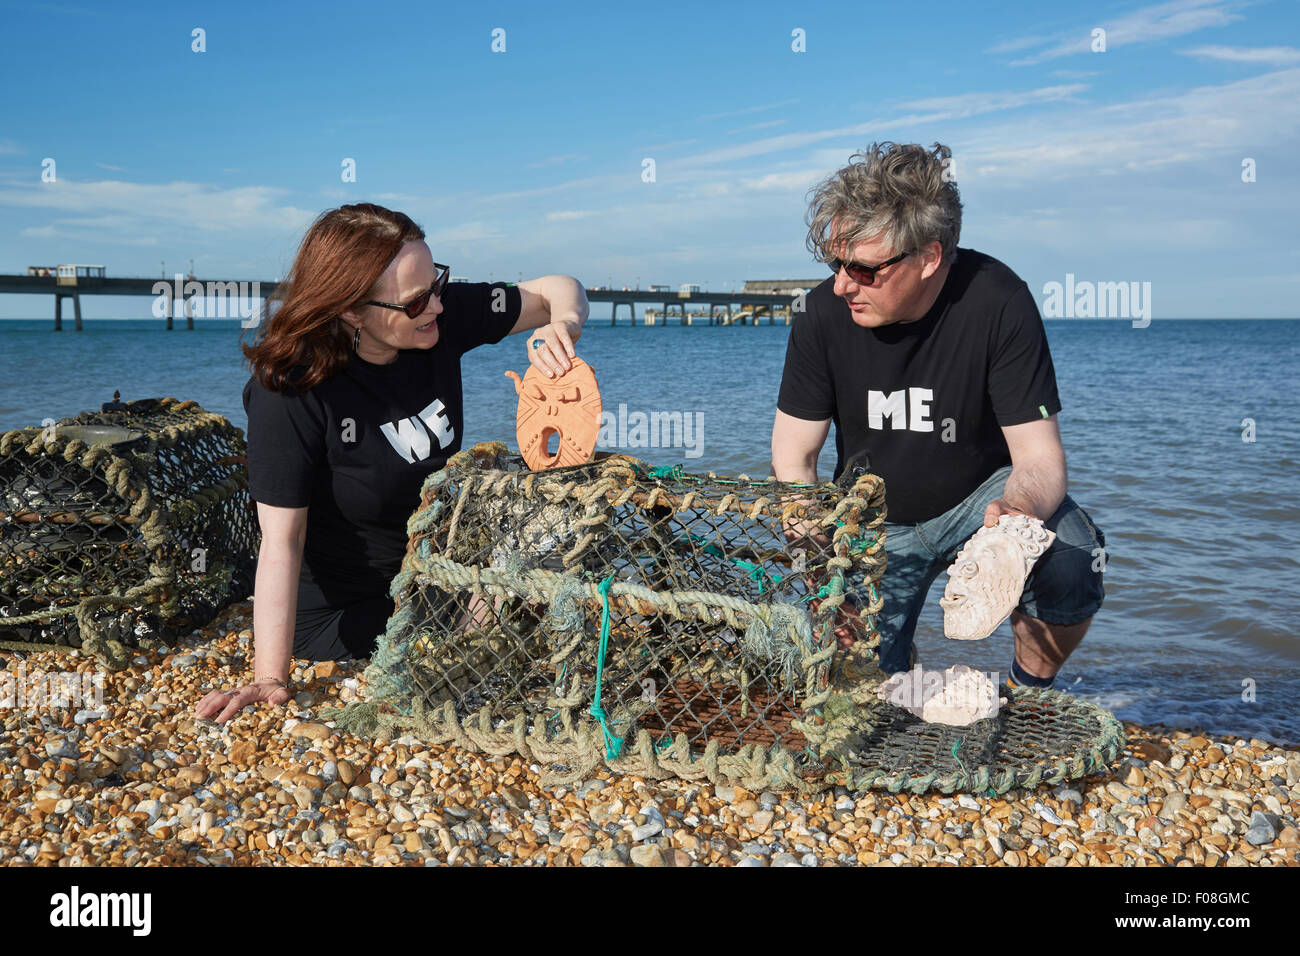 Deal, Kent, UK, Sunday 9th August 2015. Kate Davis and David Moore on Deal beach putting 'Cabbo' masks into lobster Stock Photo